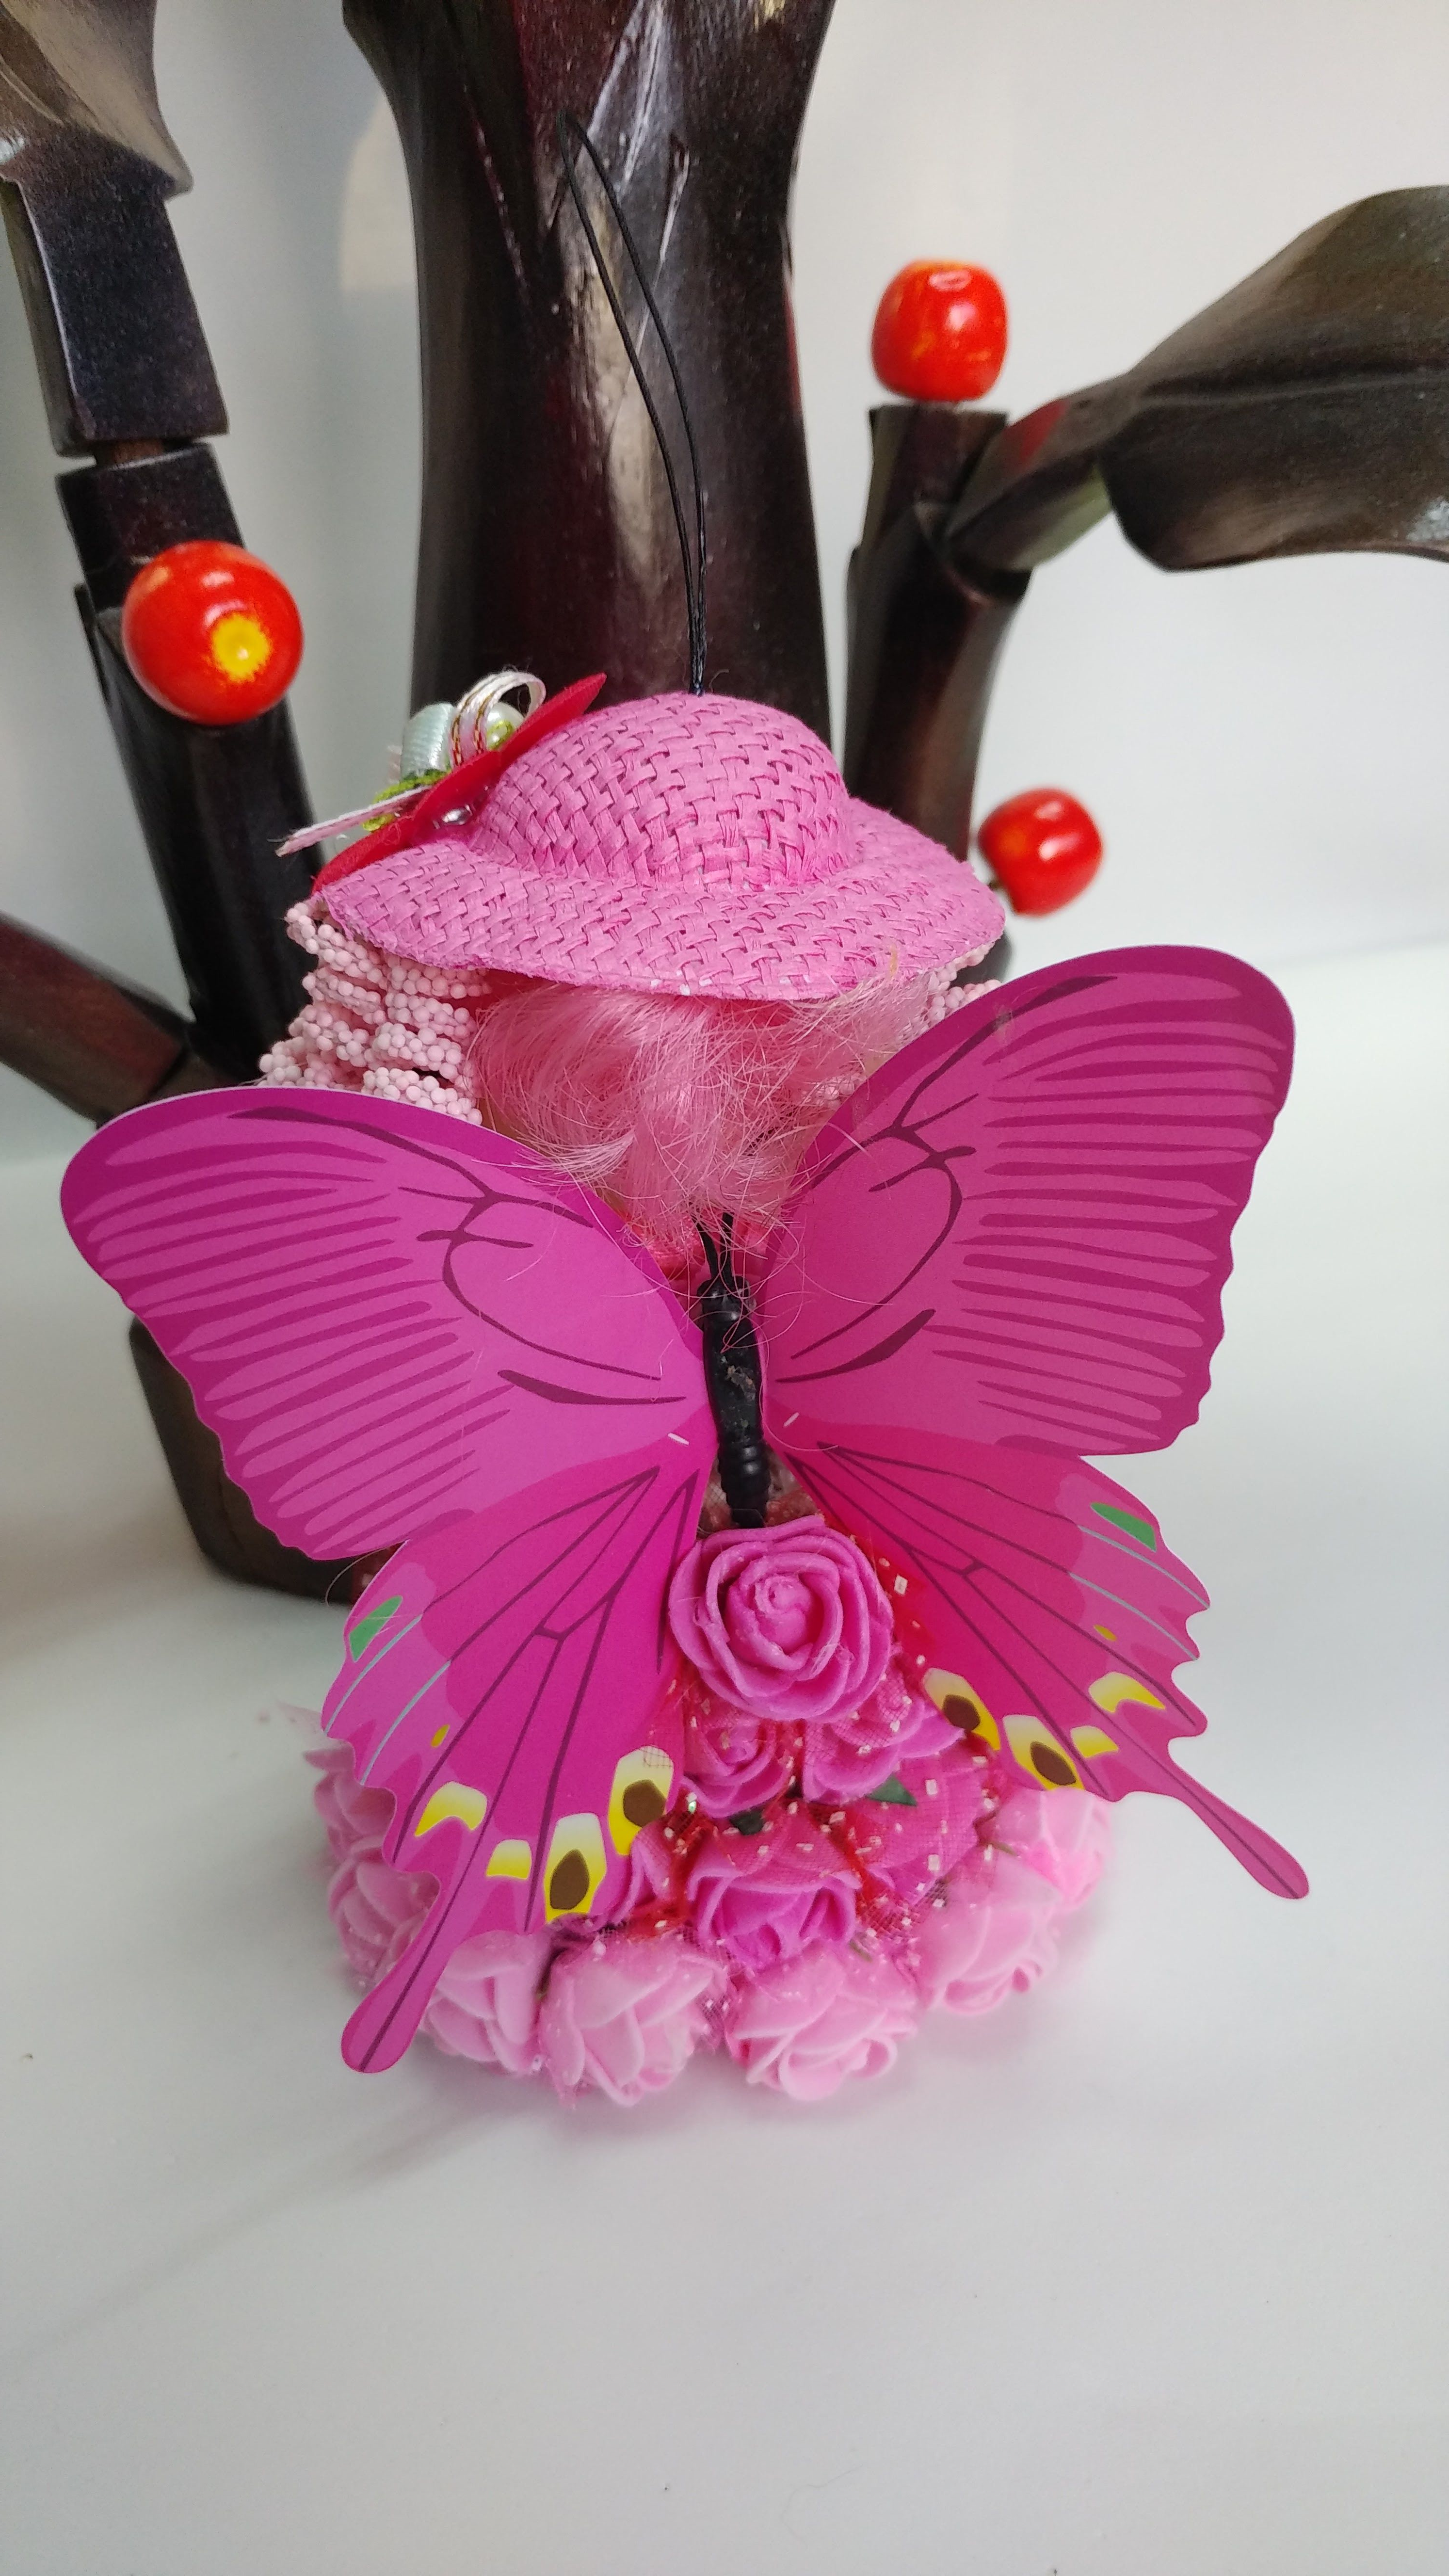 doll decor ornament gift angel tree butterfly christmas bell holiday